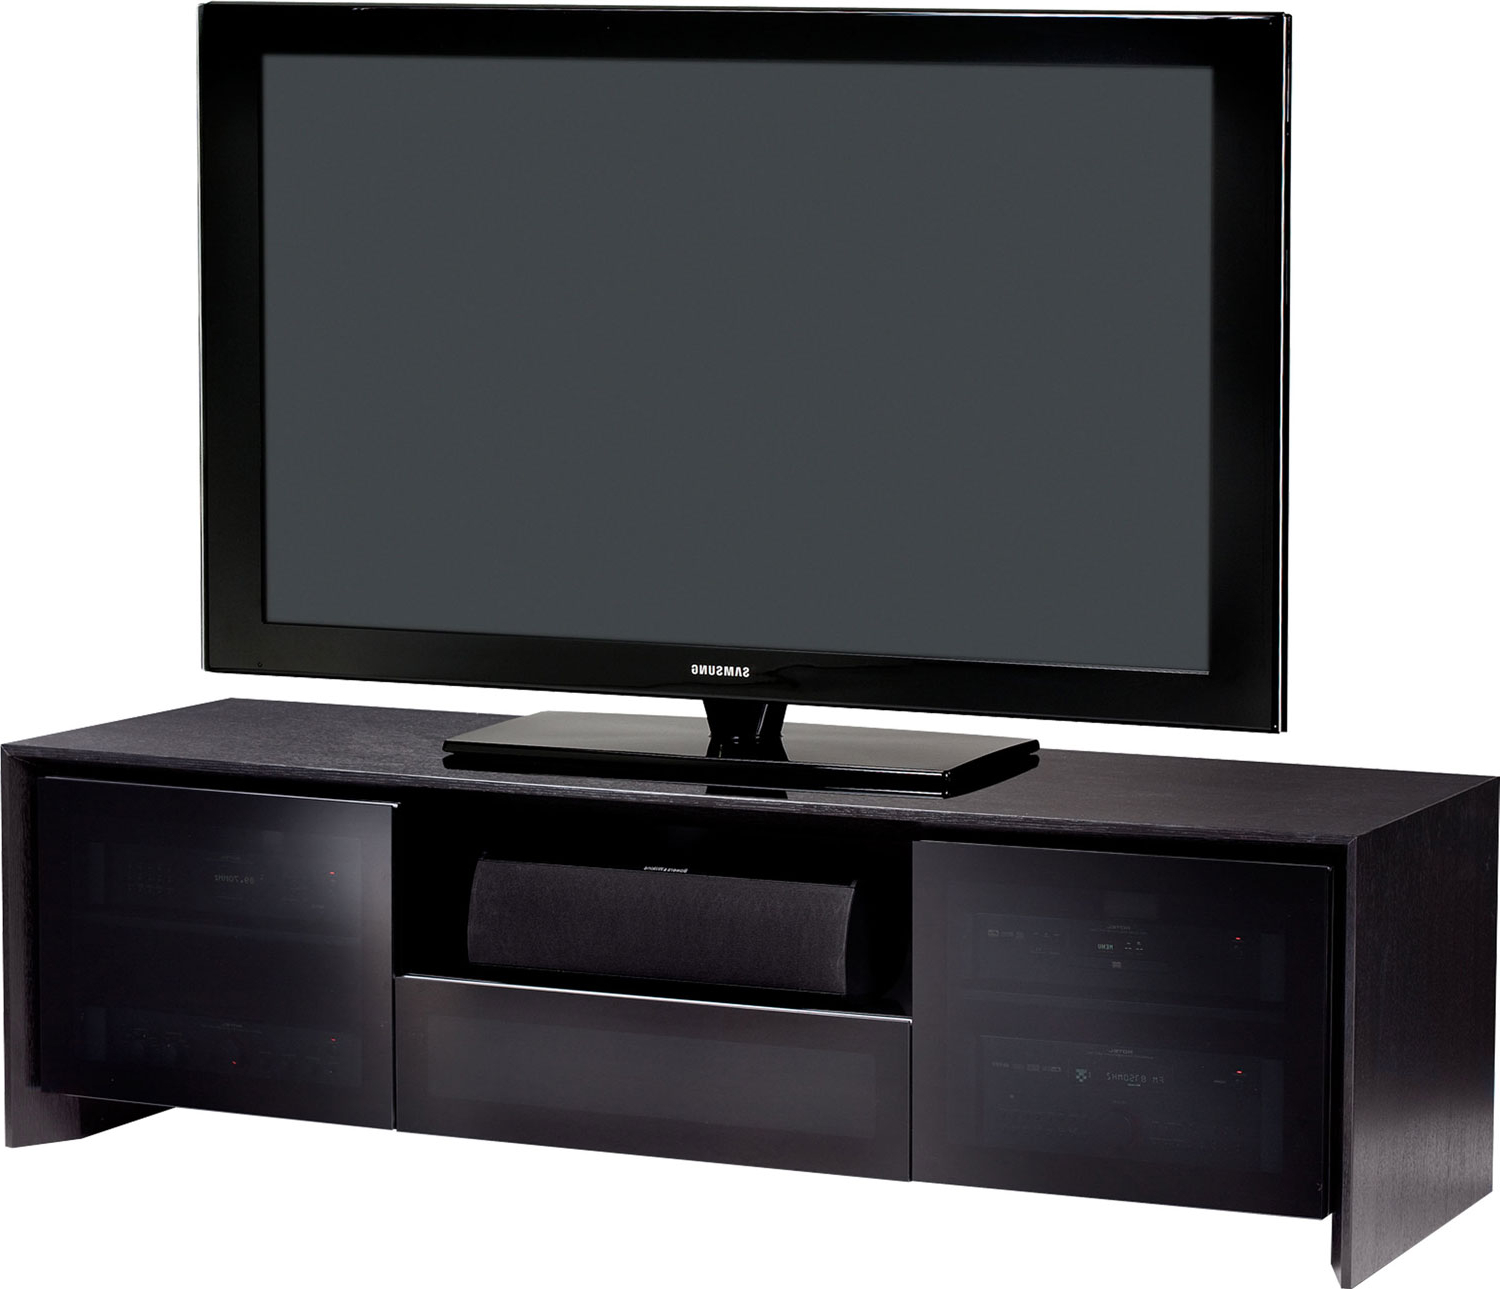 """Bdi Casata 8629 B Black Oak Tv Stand For Up To 70 Inch Pertaining To Trendy Broward Tv Stands For Tvs Up To 70"""" (View 8 of 25)"""